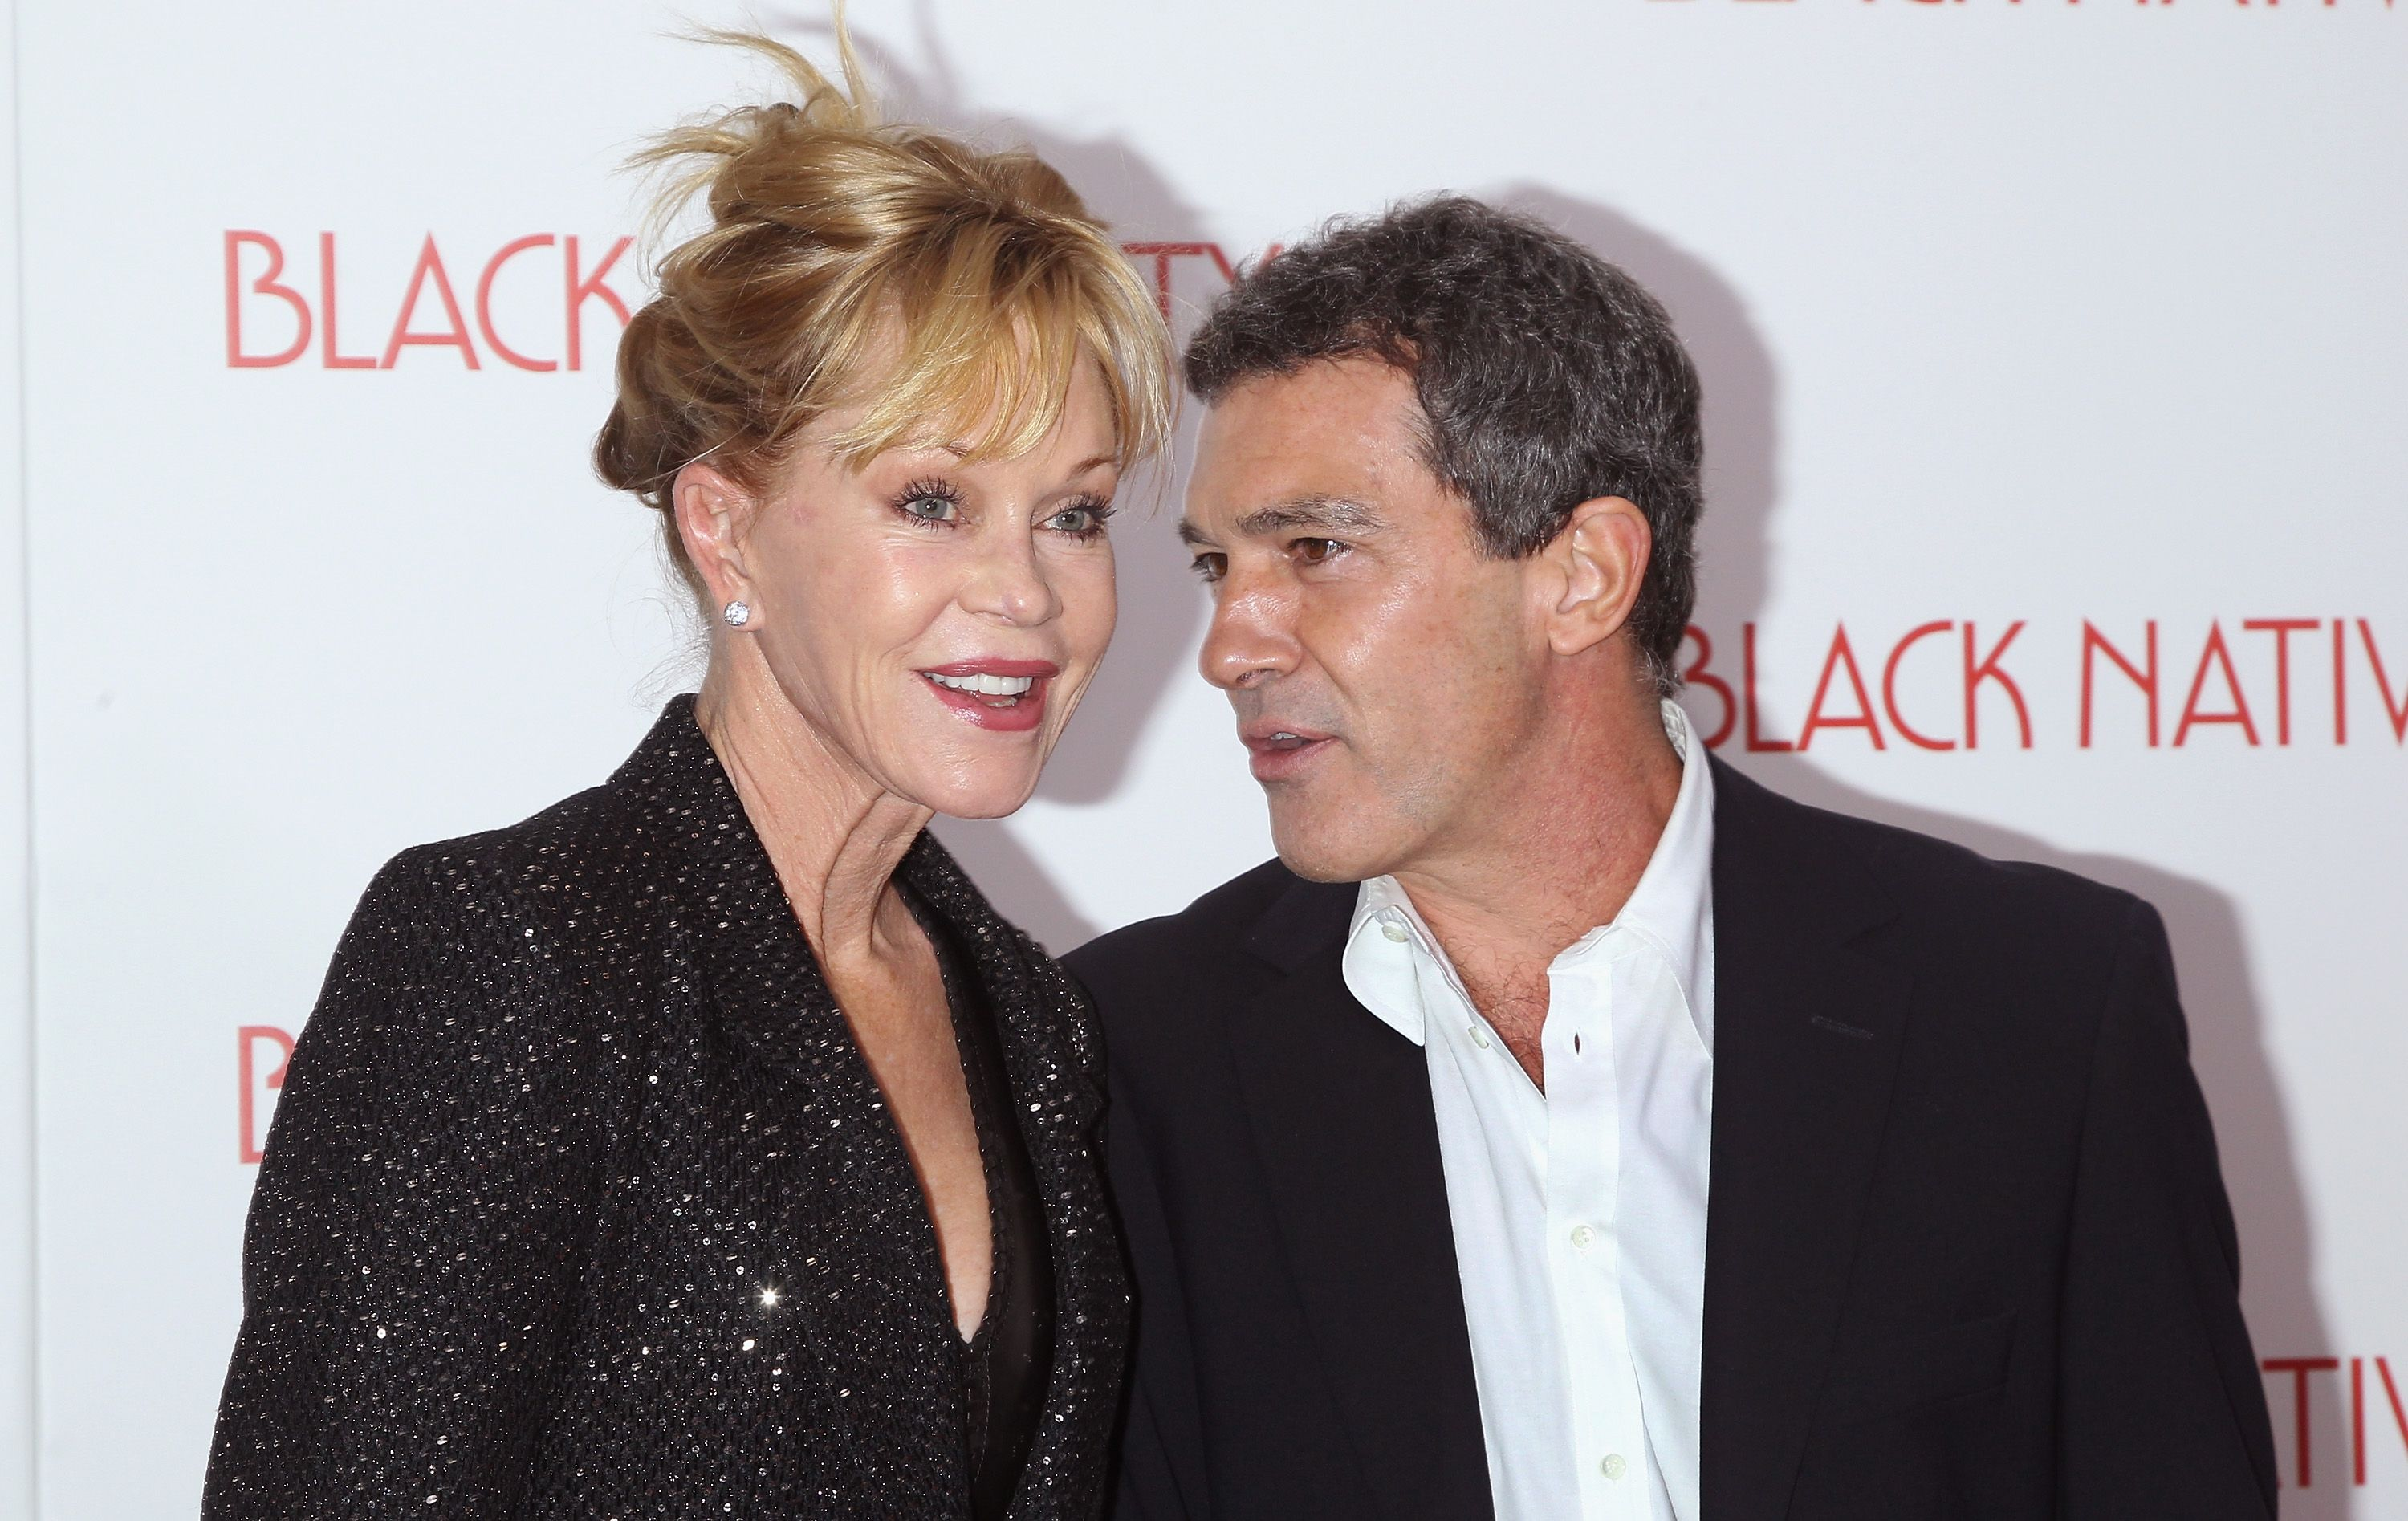 """Melanie Griffith and Antonio Banderas at the """"Black Nativity"""" premiere in 2013 in New York City   Source: Getty Images"""